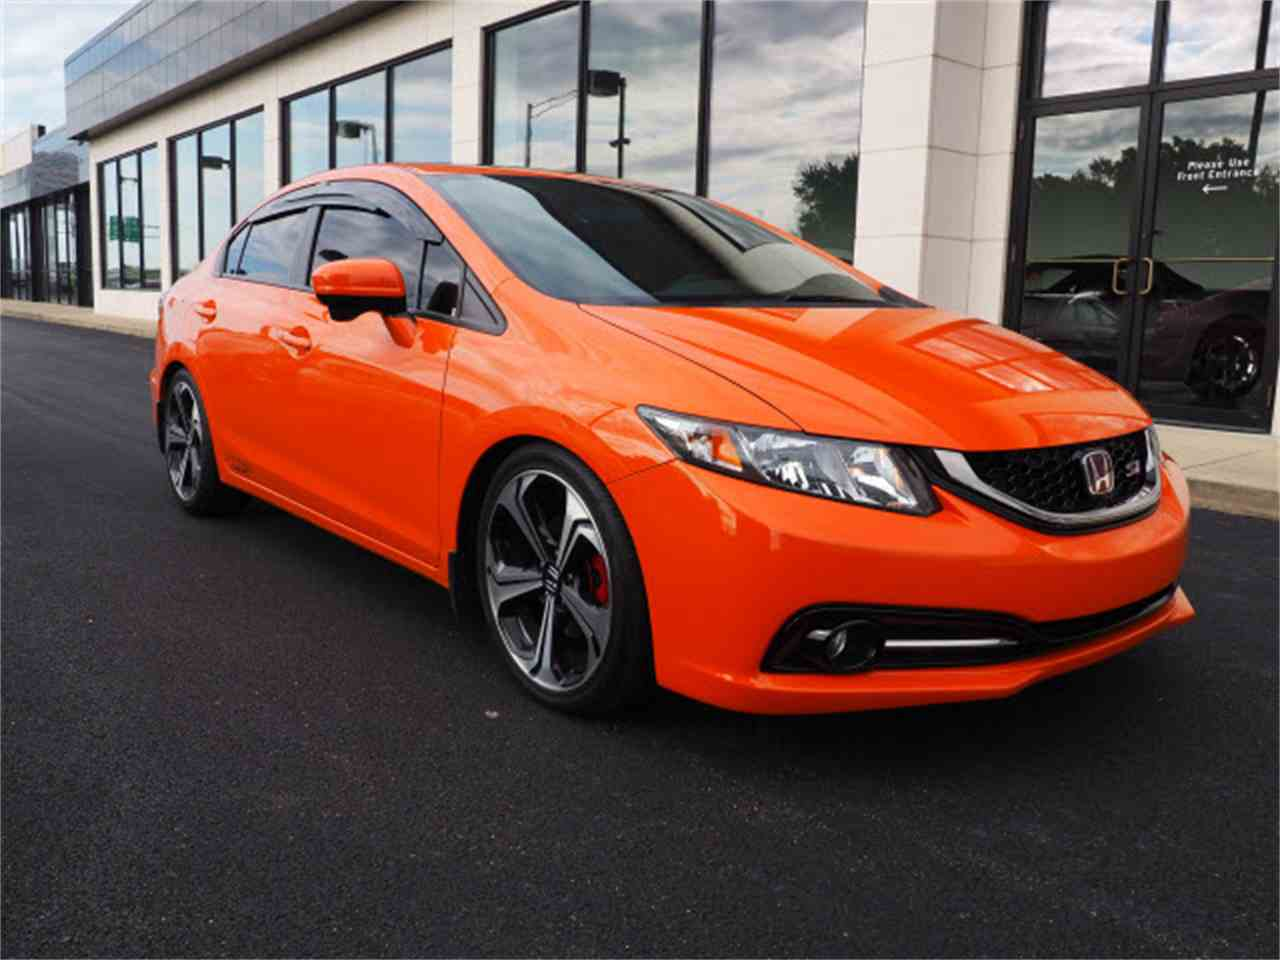 Large Picture of '15 Civic - $19,999.00 Offered by Nelson Automotive, Ltd. - LUQU